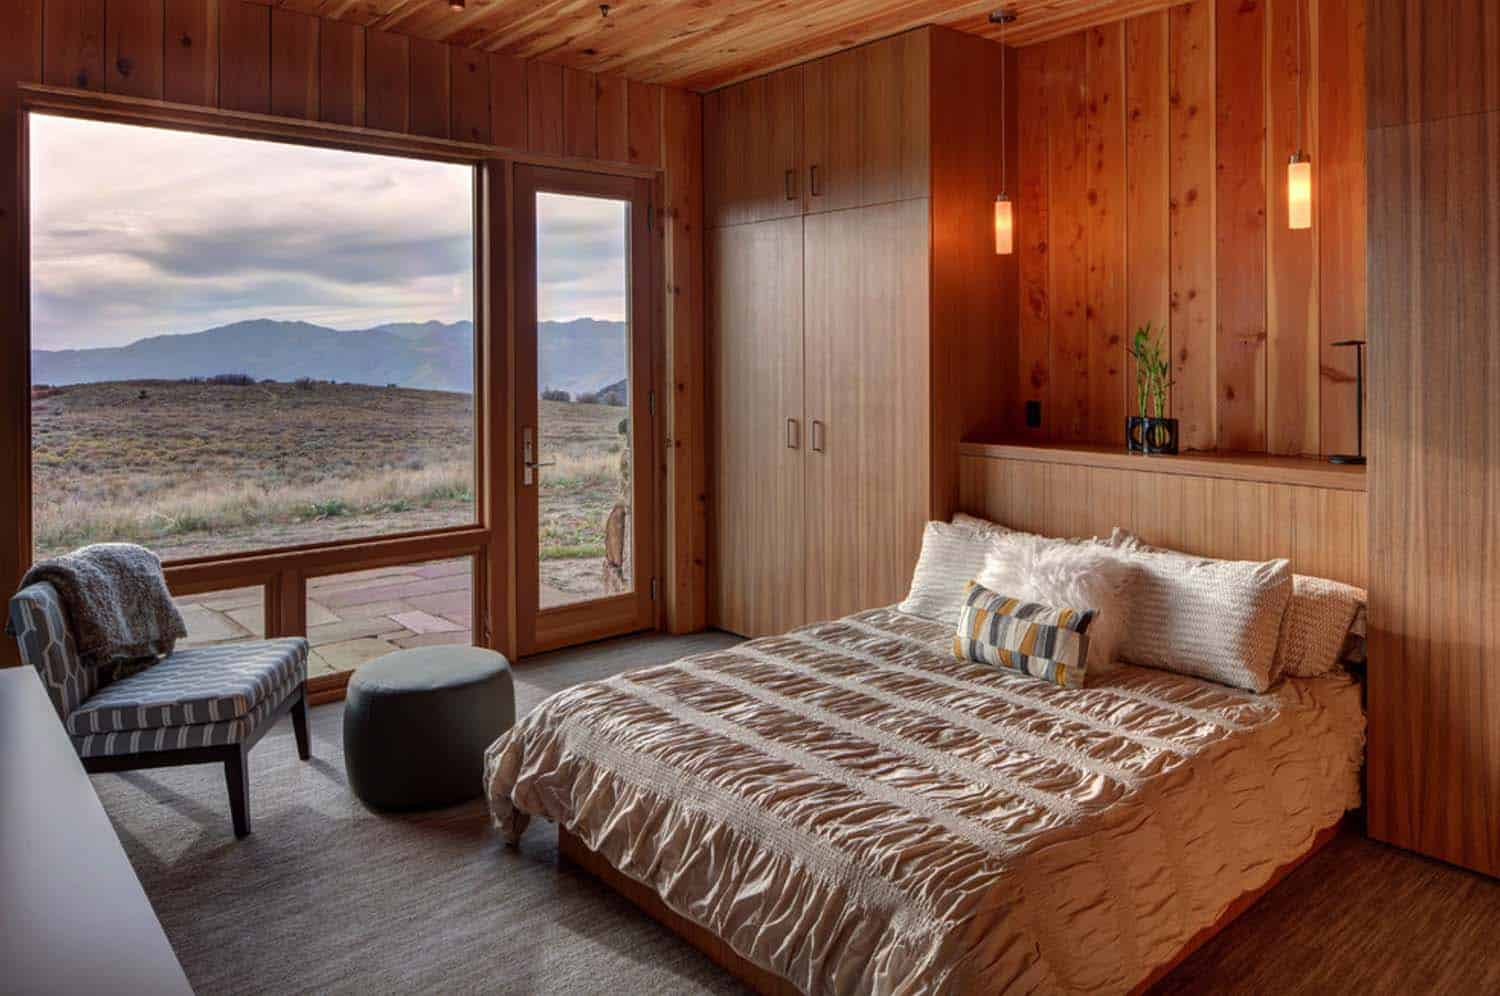 Modern Rustic Log Home-Shubin Donaldson Architects-21-1 Kindesign